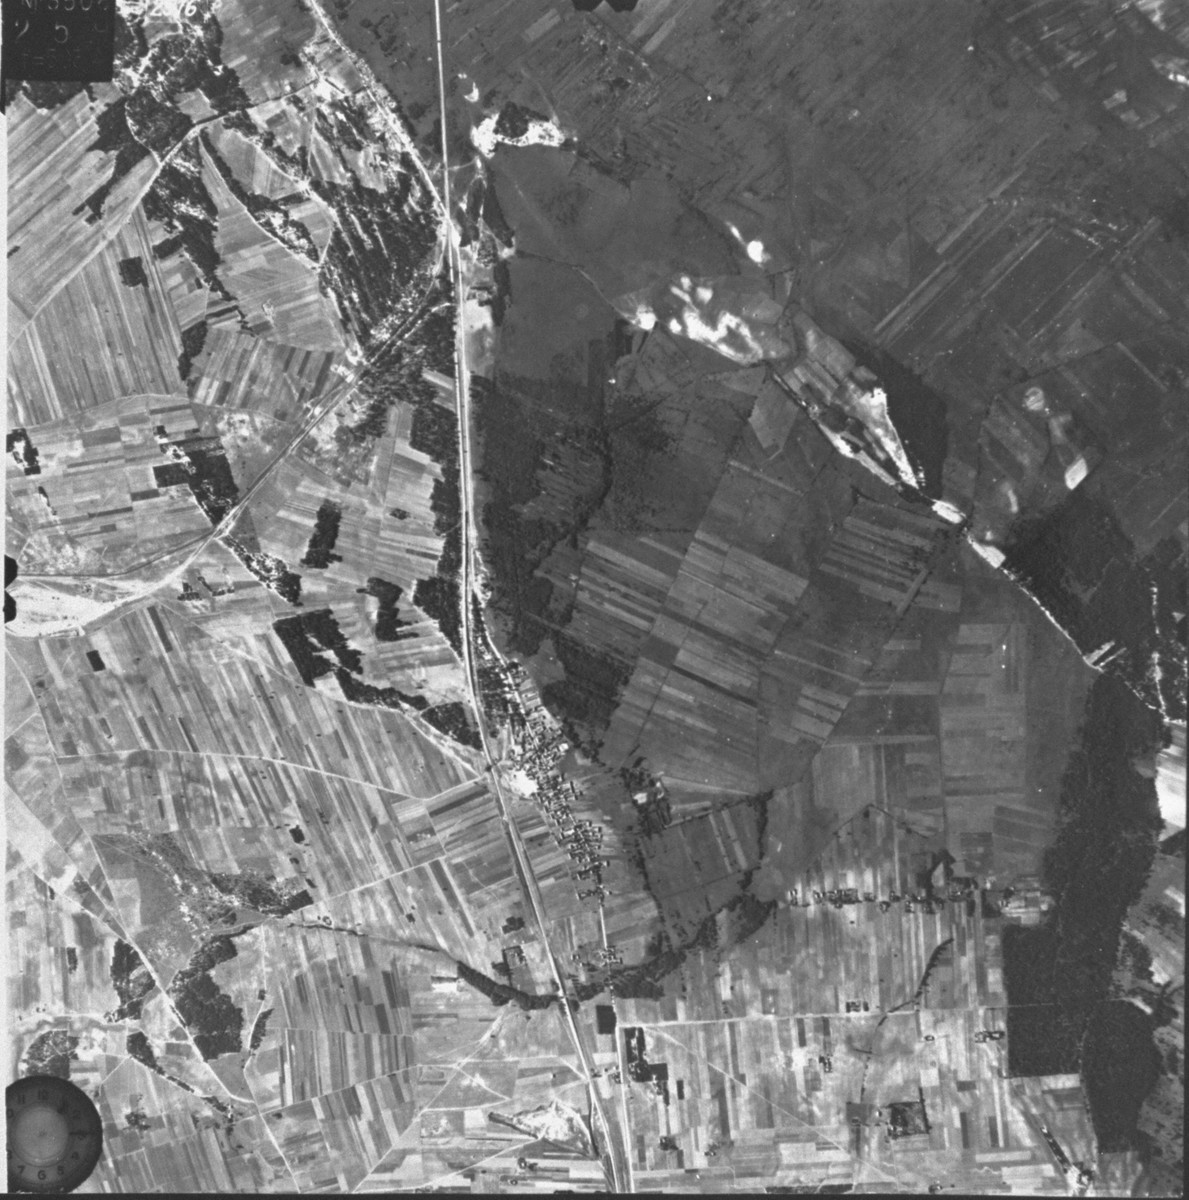 An aerial photograph of the Treblinka area.